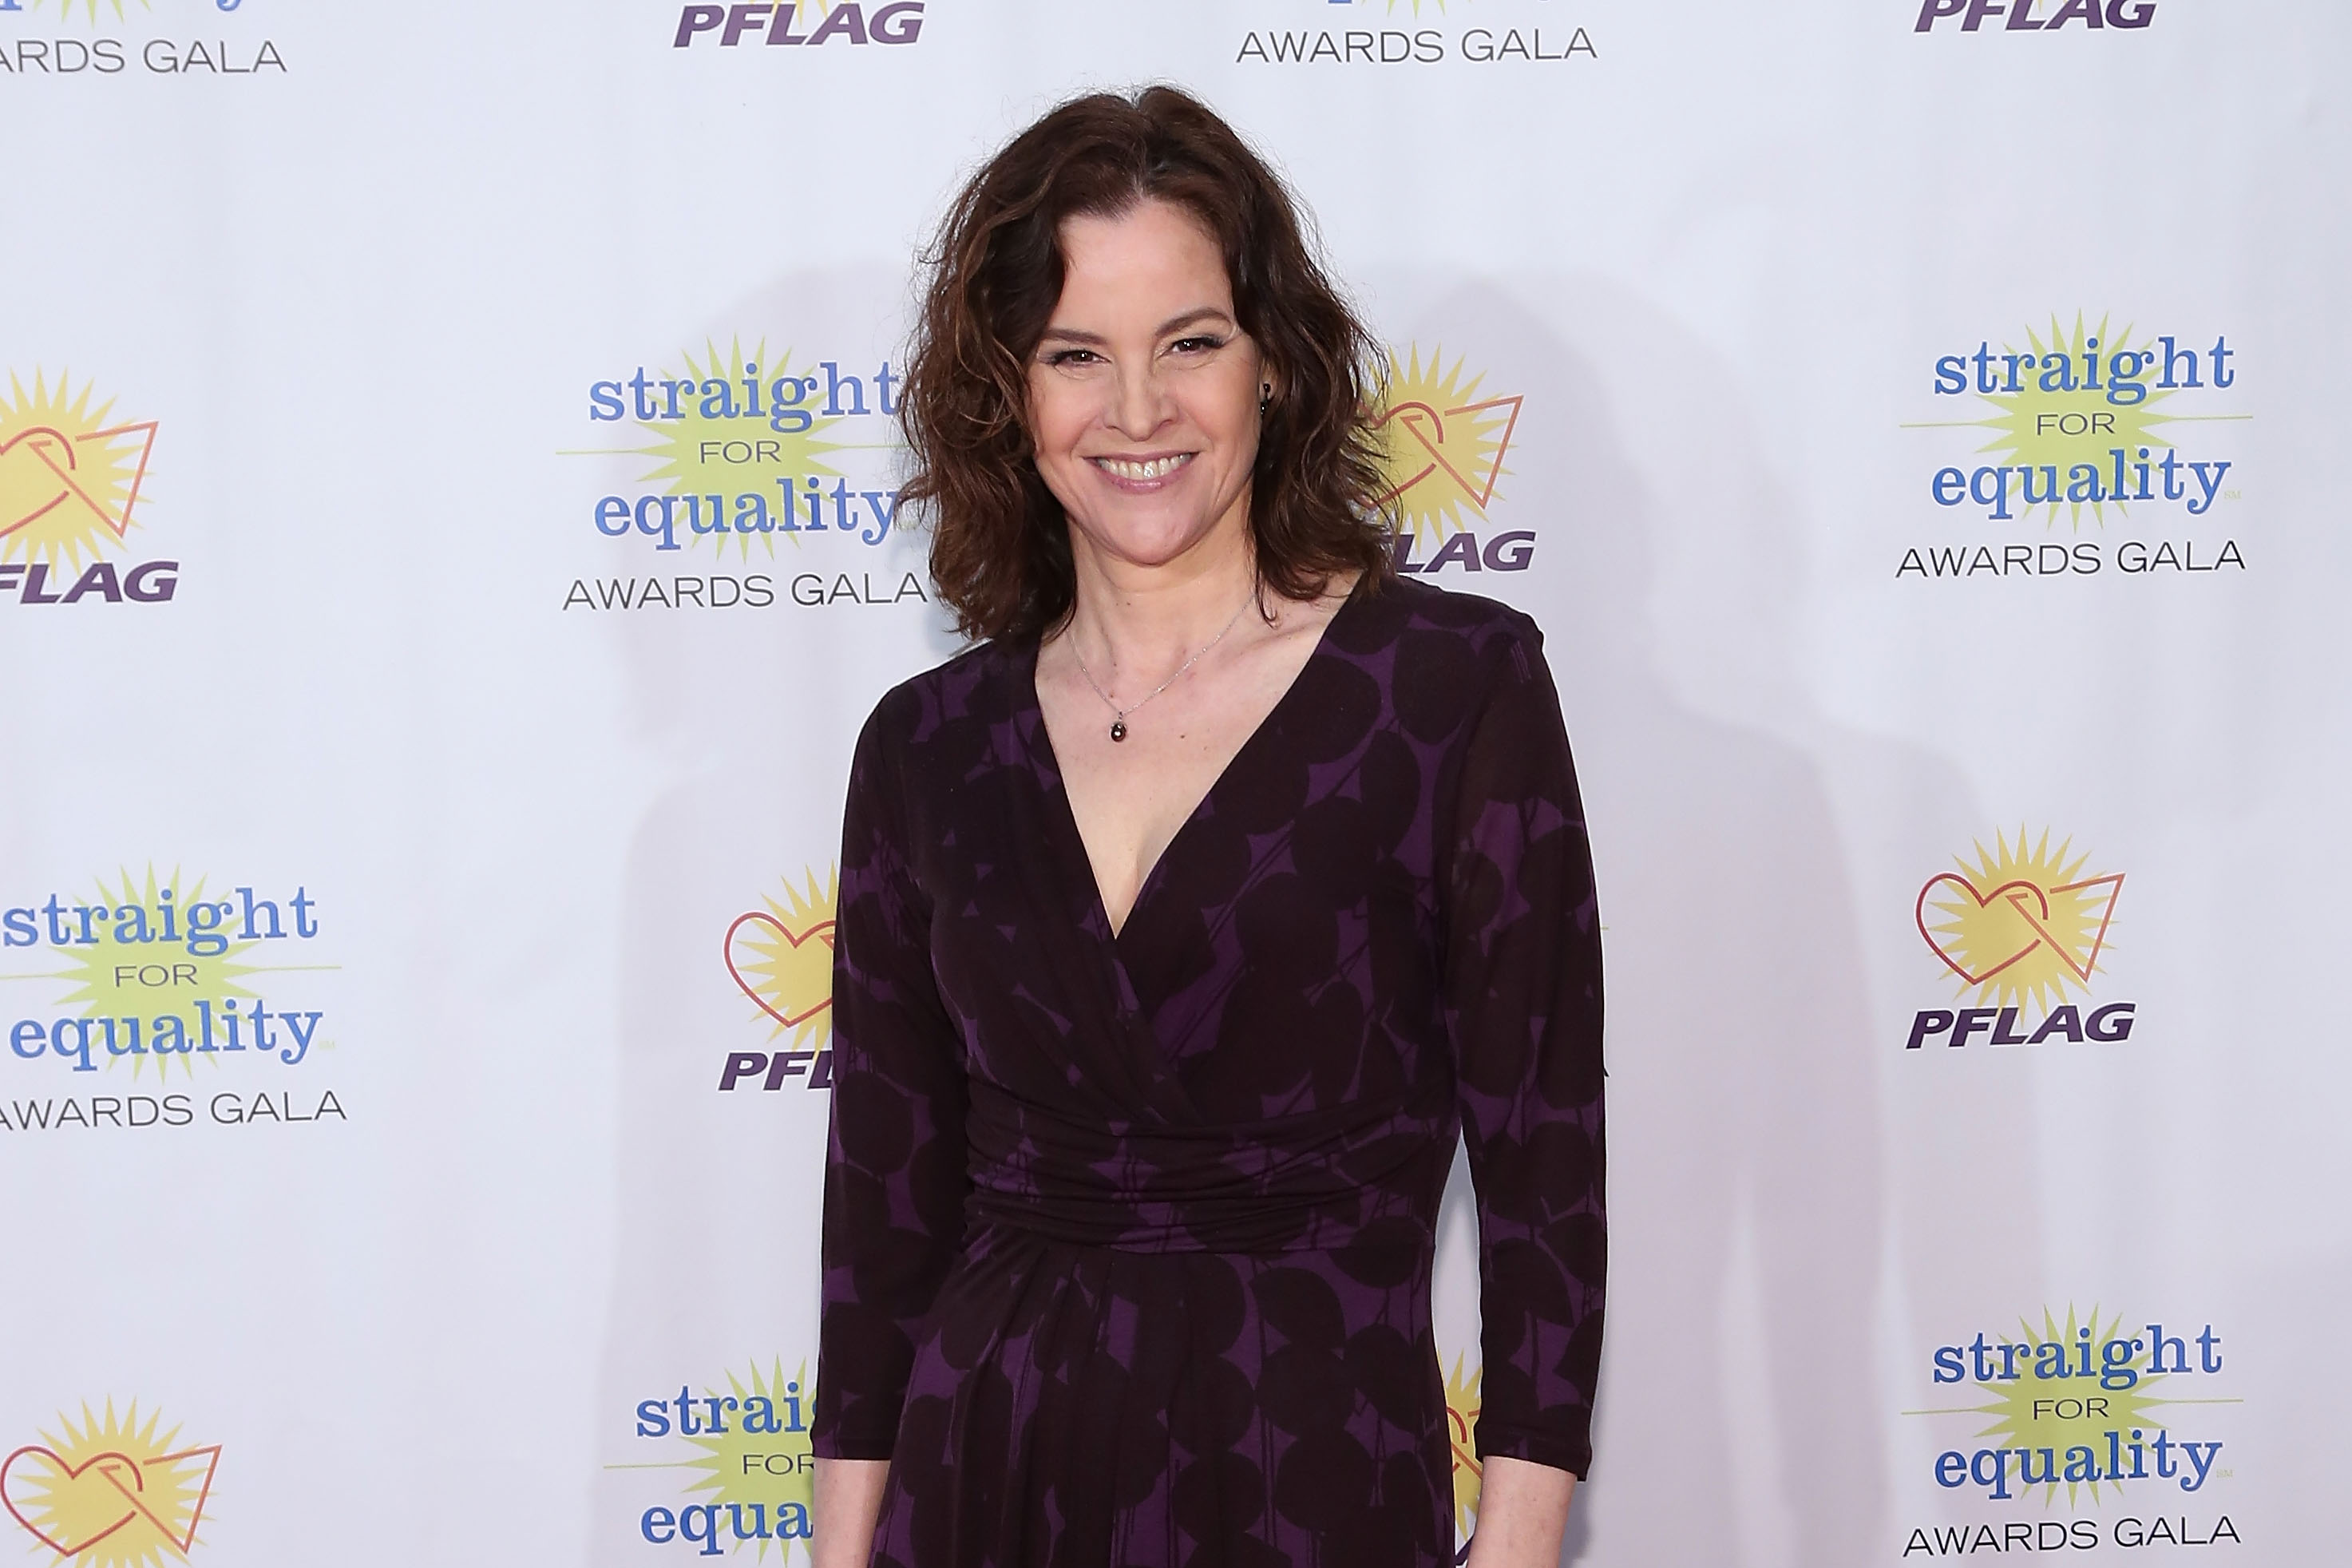 Who is Ally Sheedy and what did she tweet about James Franco?